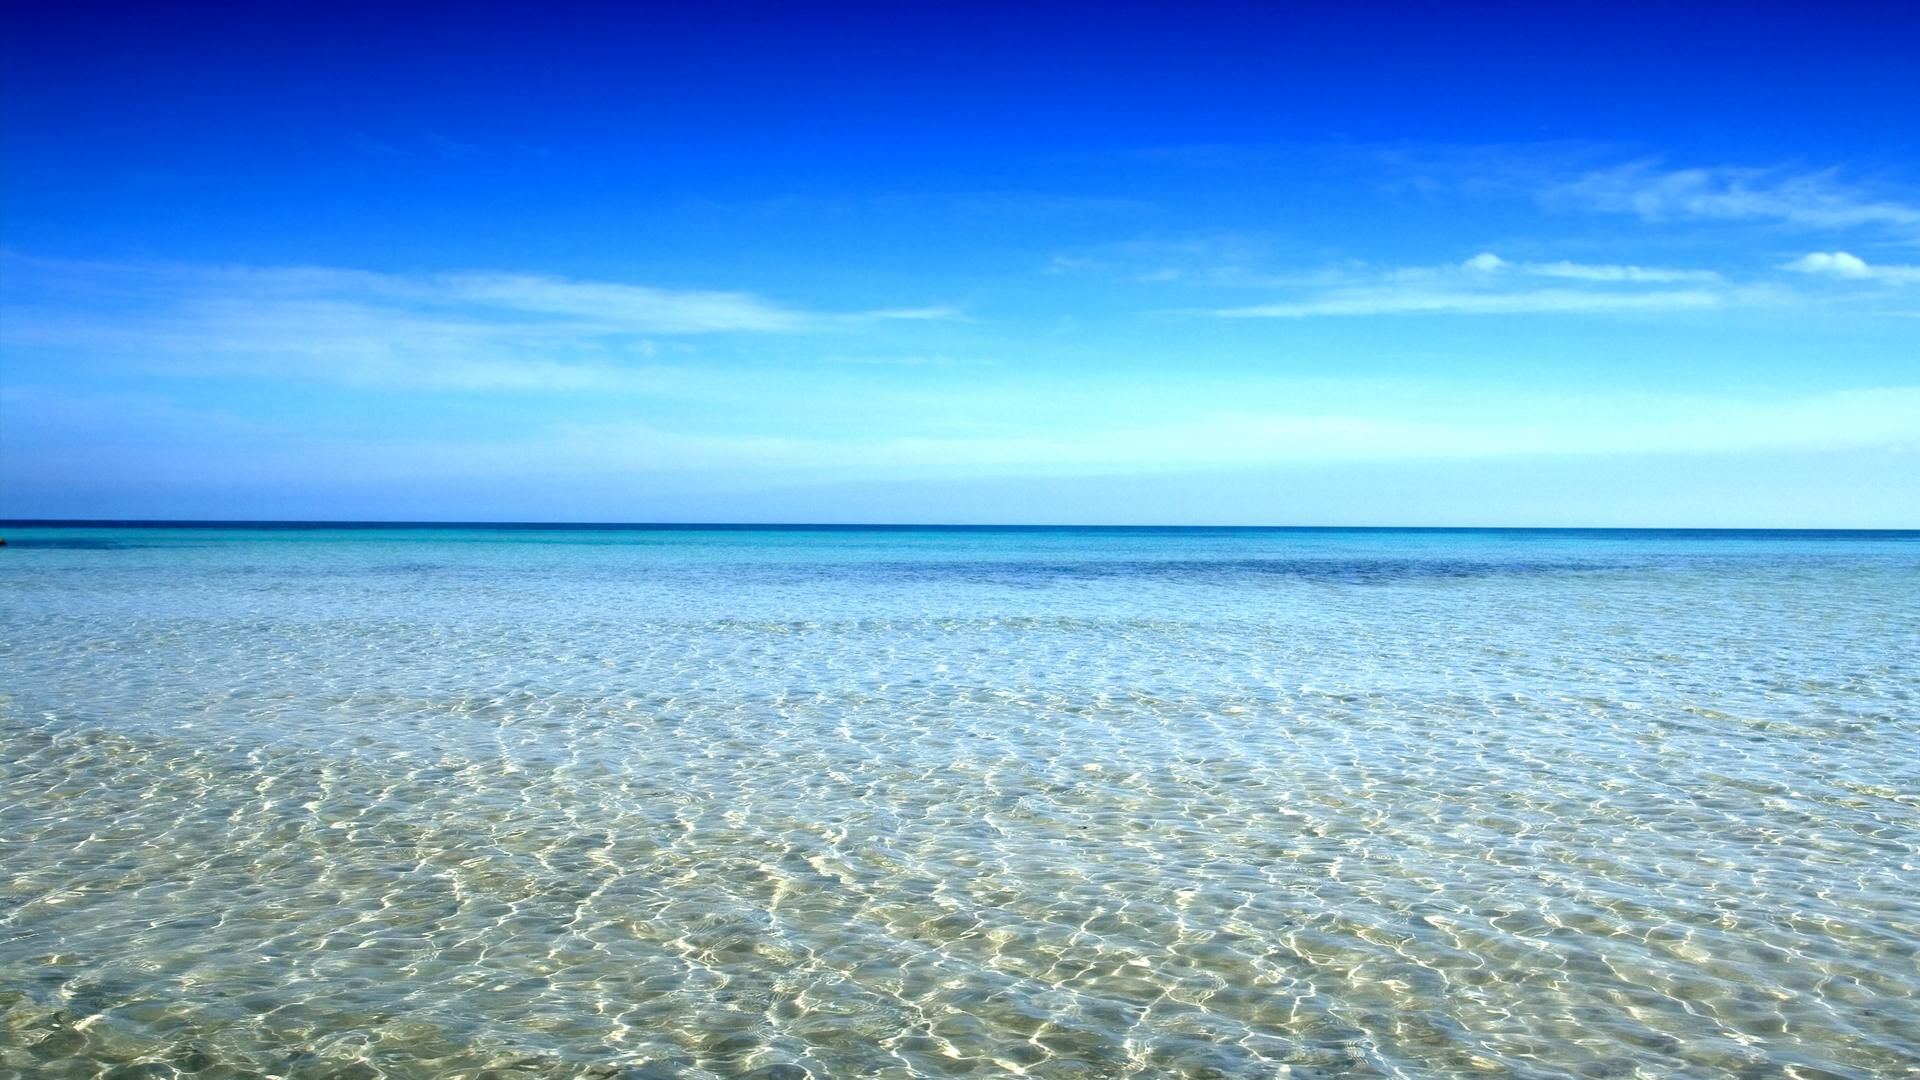 ocean water background image 186 wallpaper full hd 1920a—1080 pixels